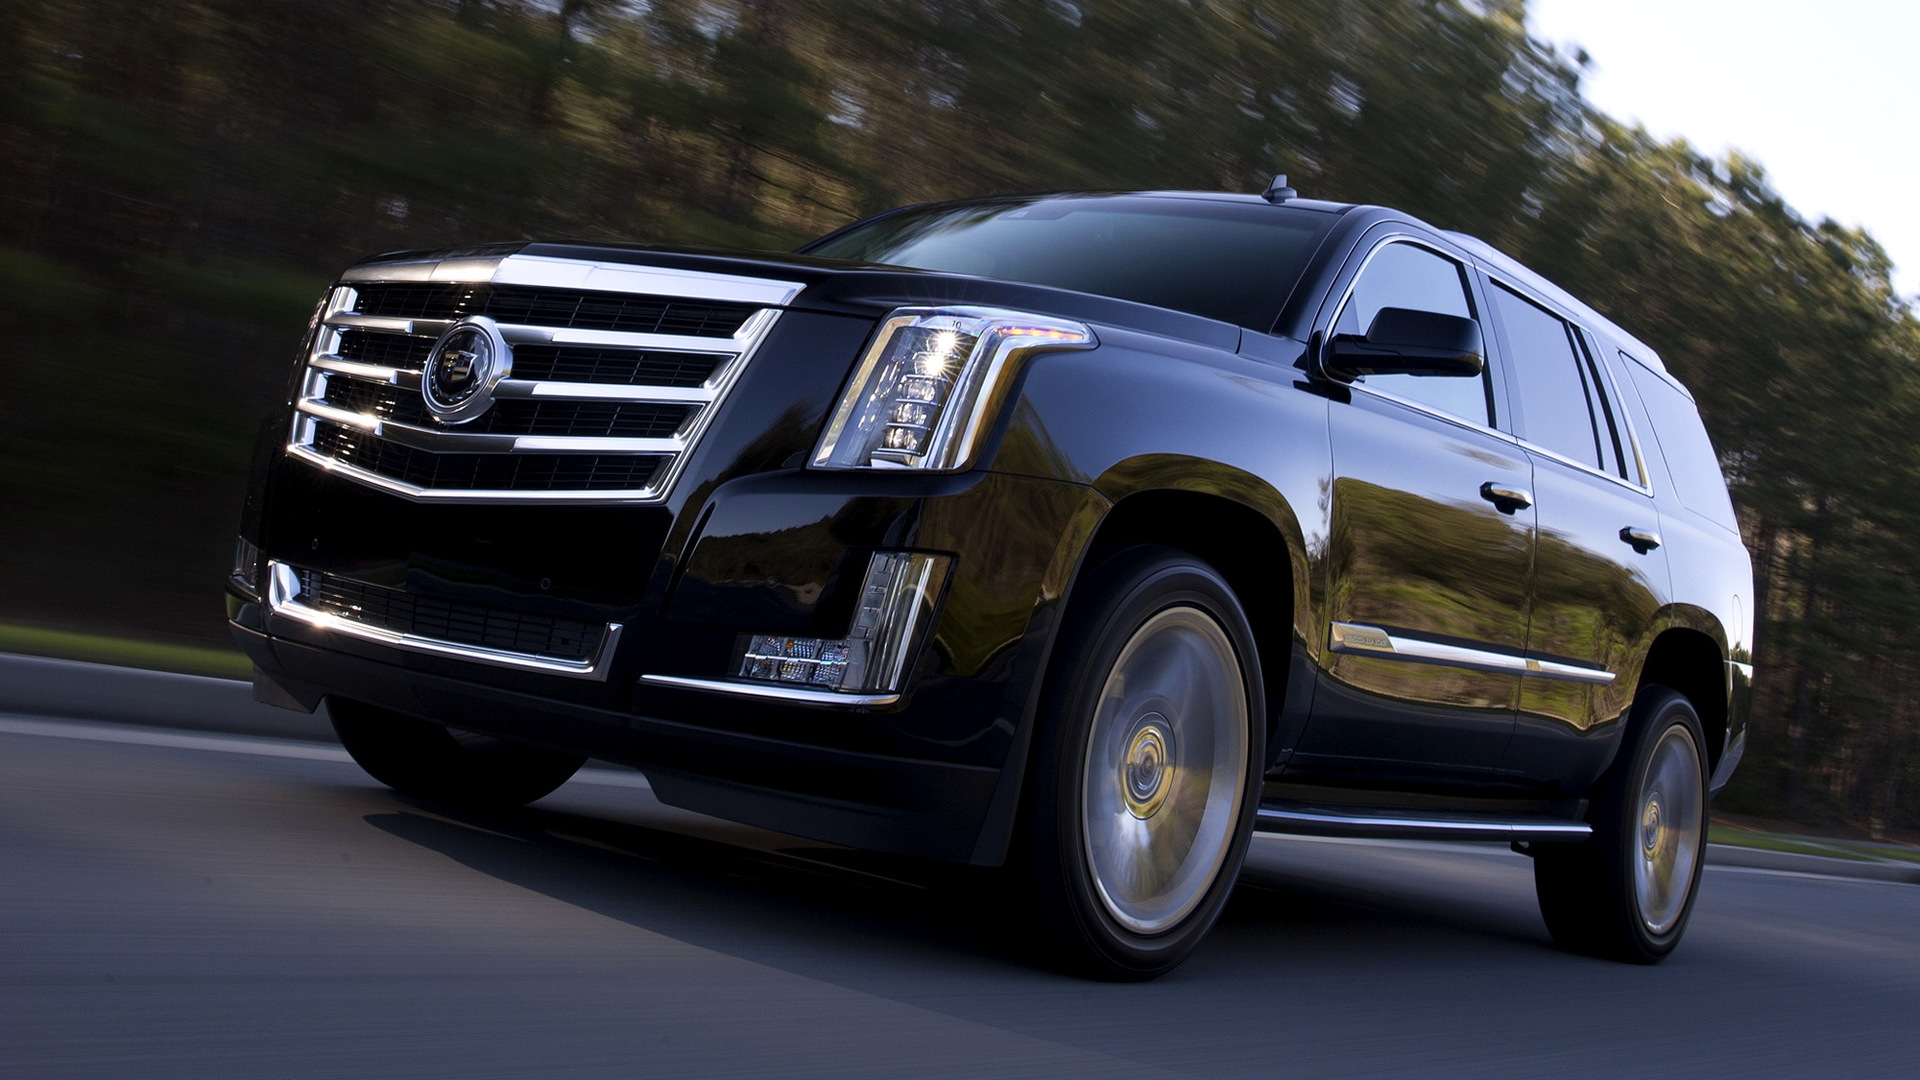 Cadillac Escalade (2015) Wallpapers and HD Images - Car Pixel